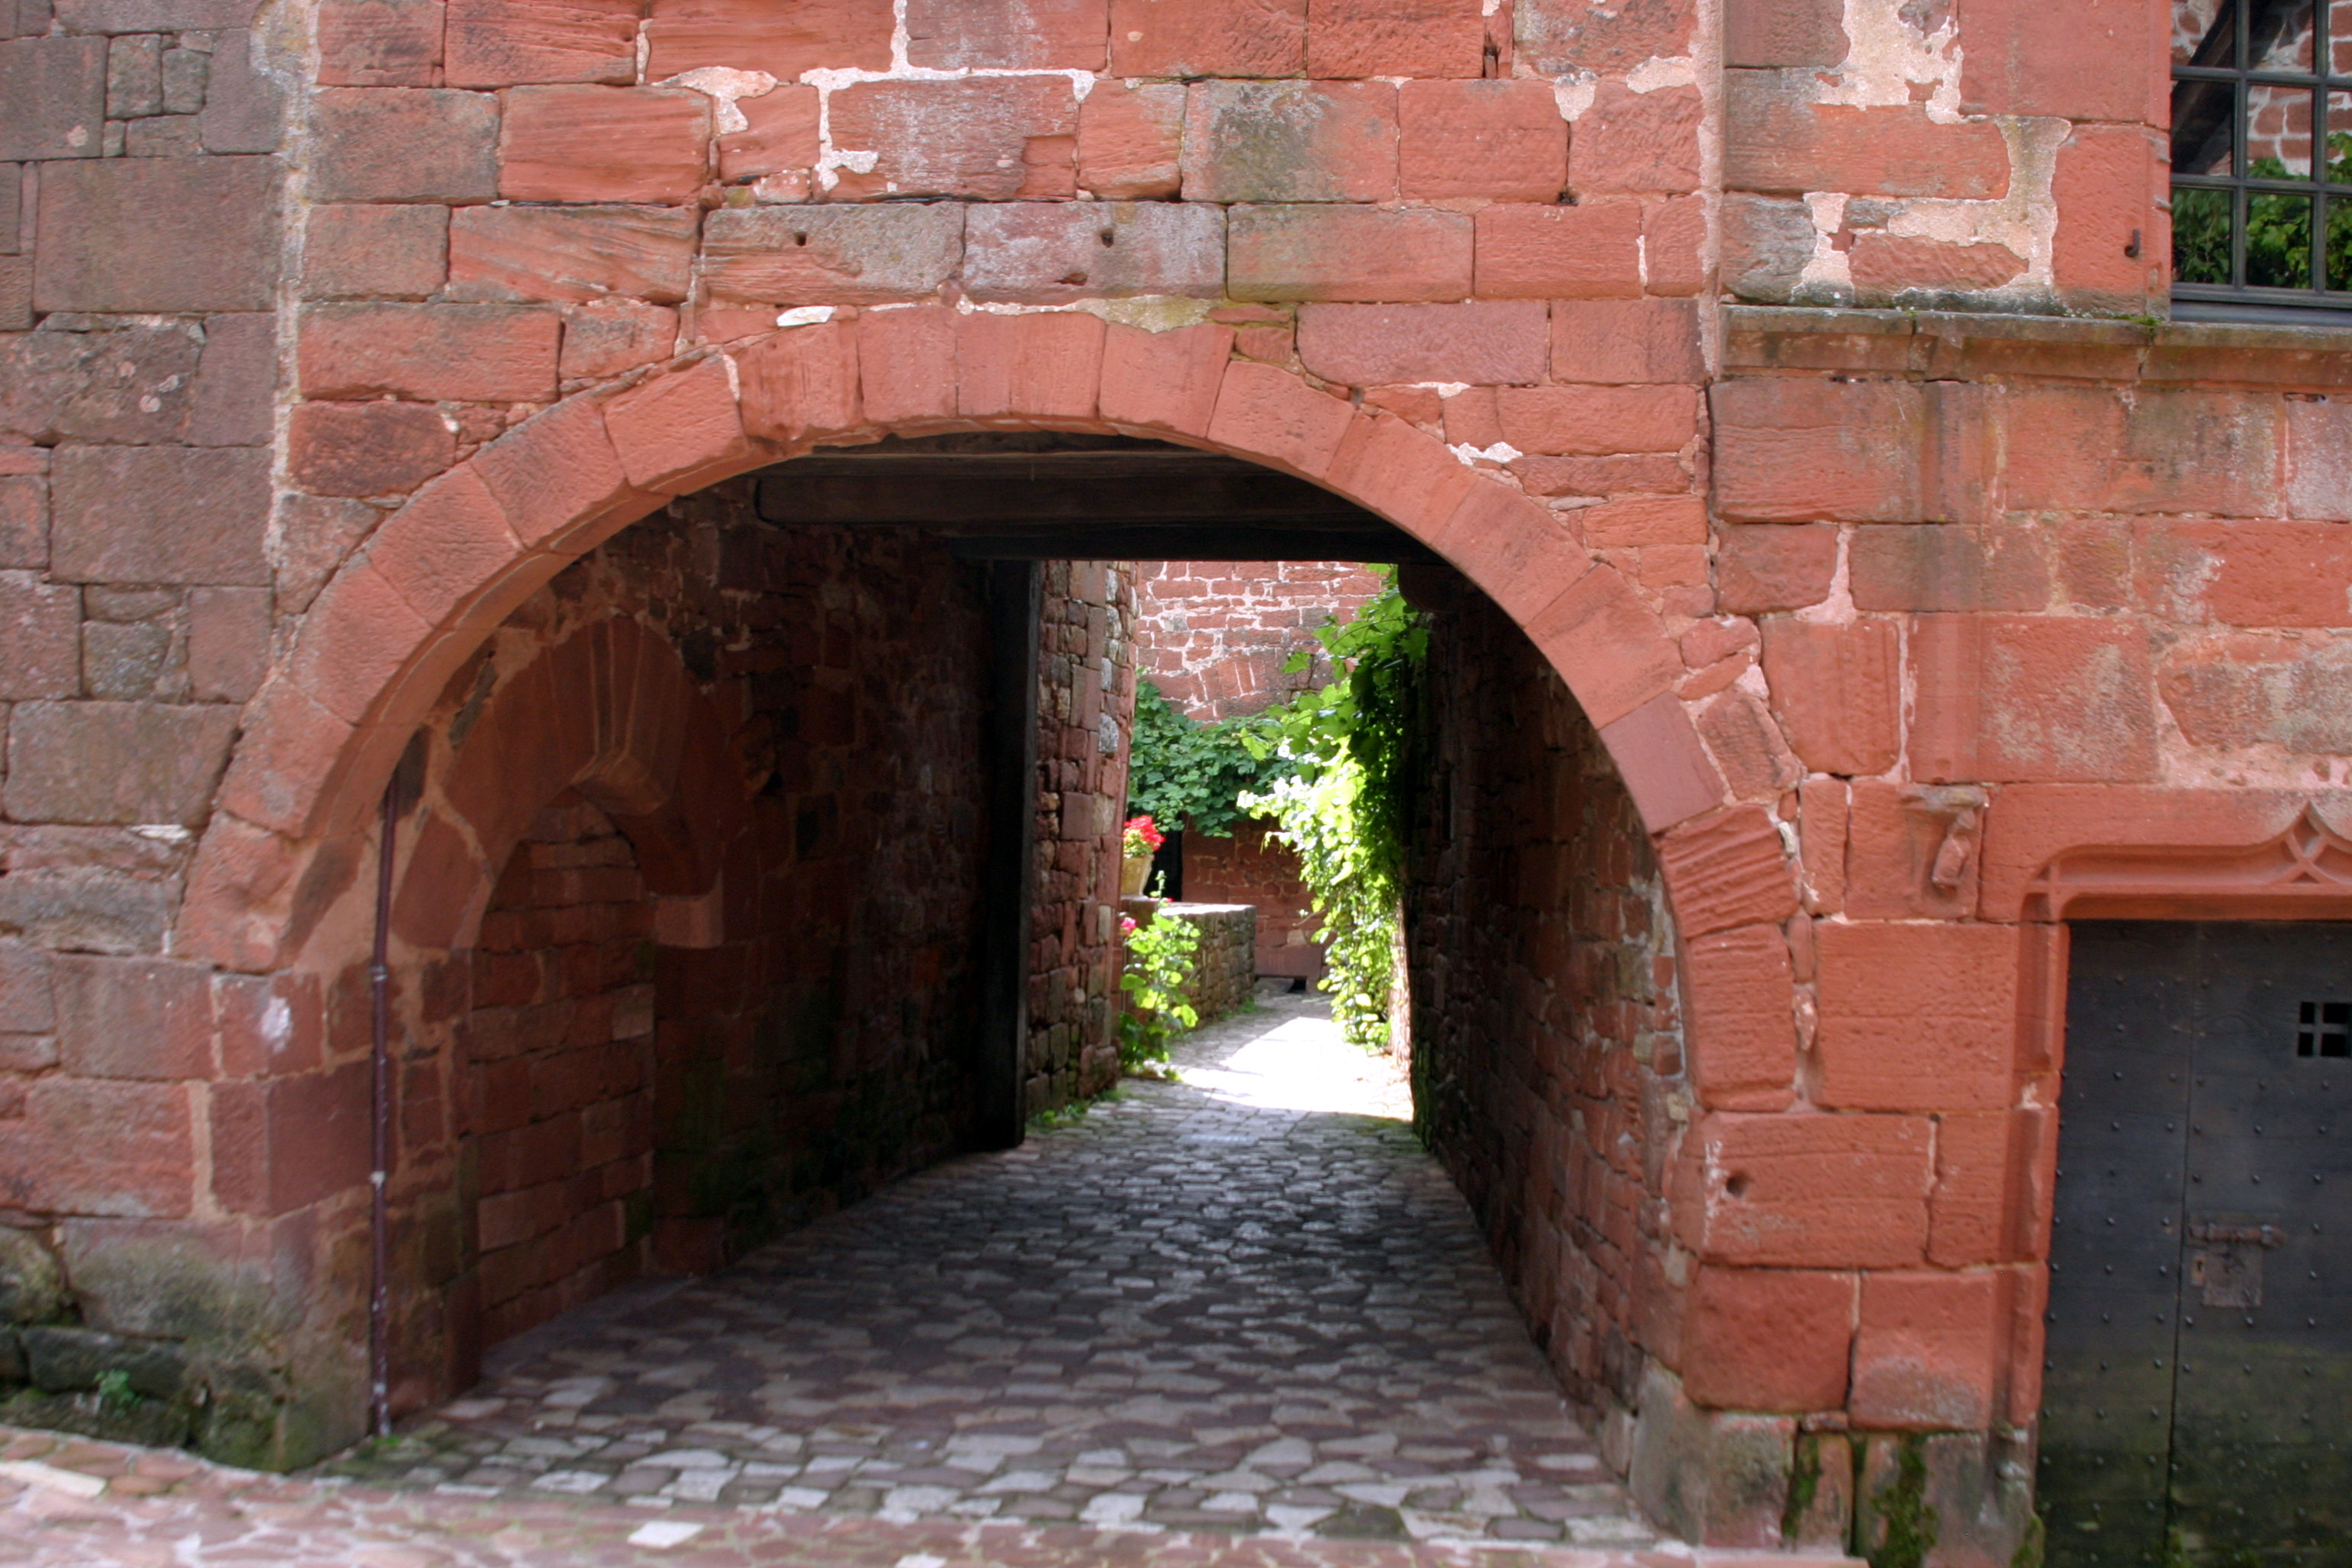 Collonges-la-Rouge, France - Through the arch